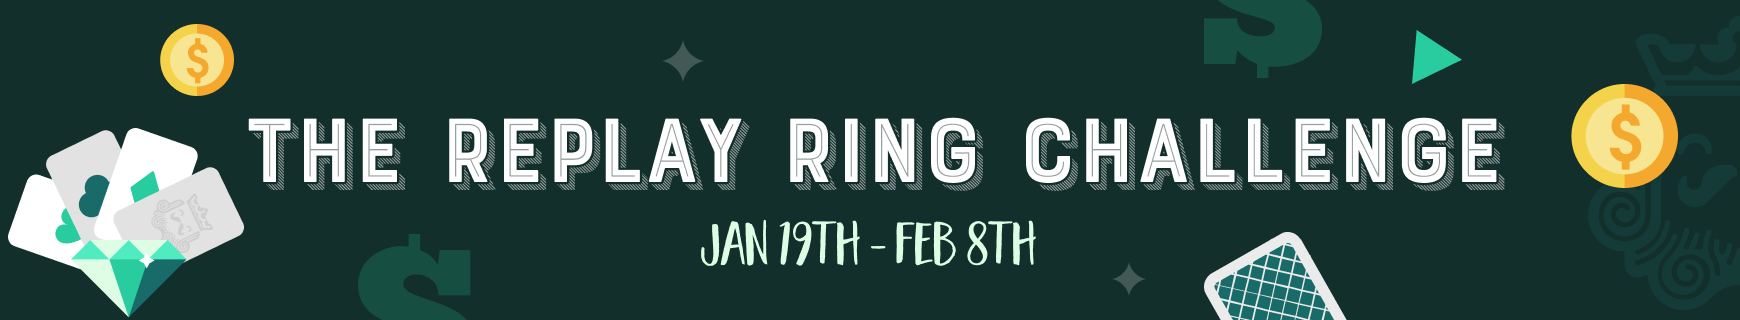 The replay ring challenge   dashboard %28870 x 160%29 2x